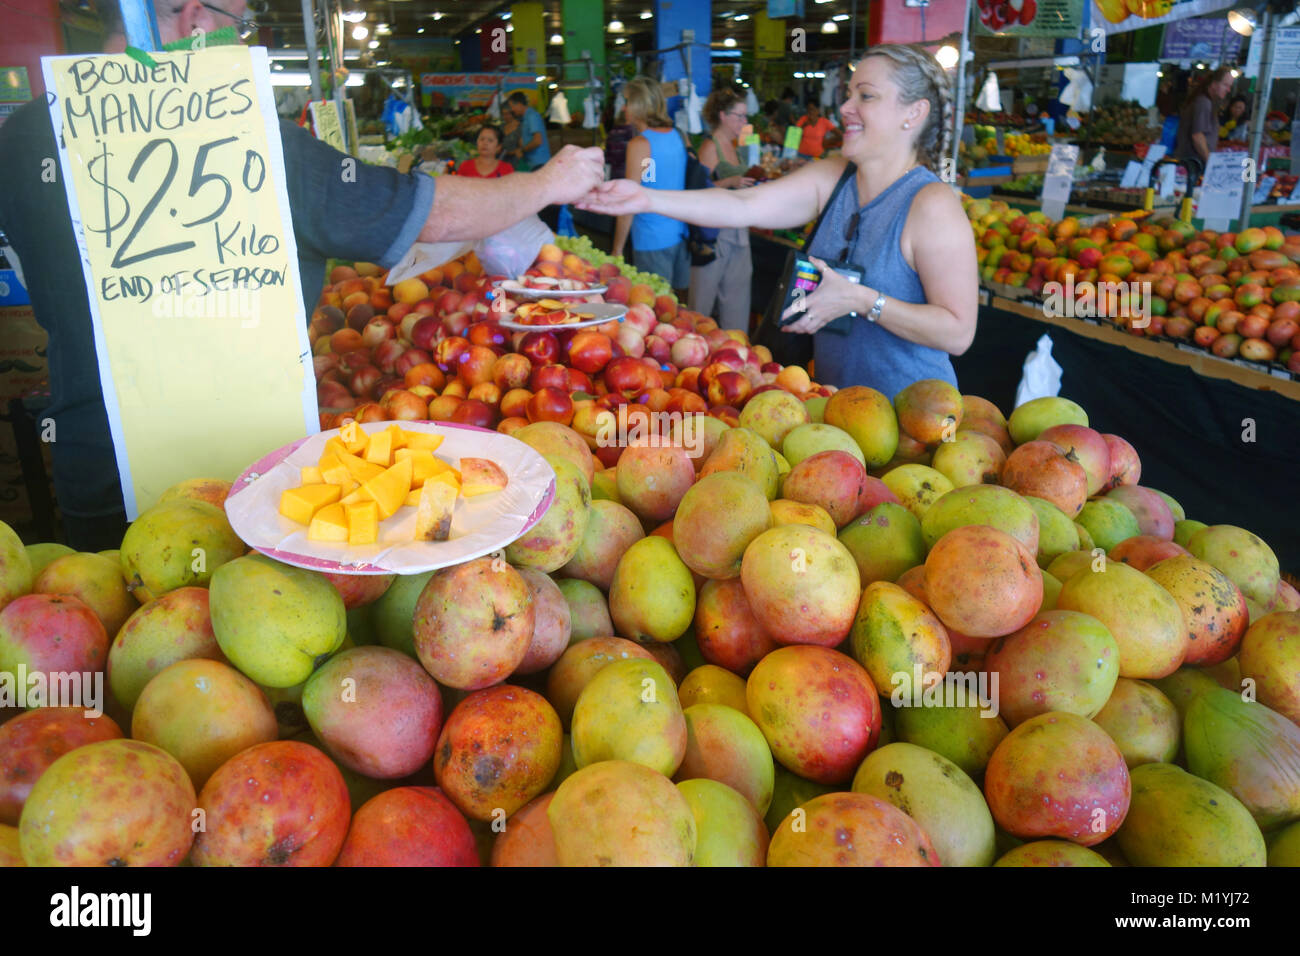 Mounds of seasonal mangoes and other fruits at Rusty's Markets, Cairns, Queensland, Australia. NO MR or PR - Stock Image